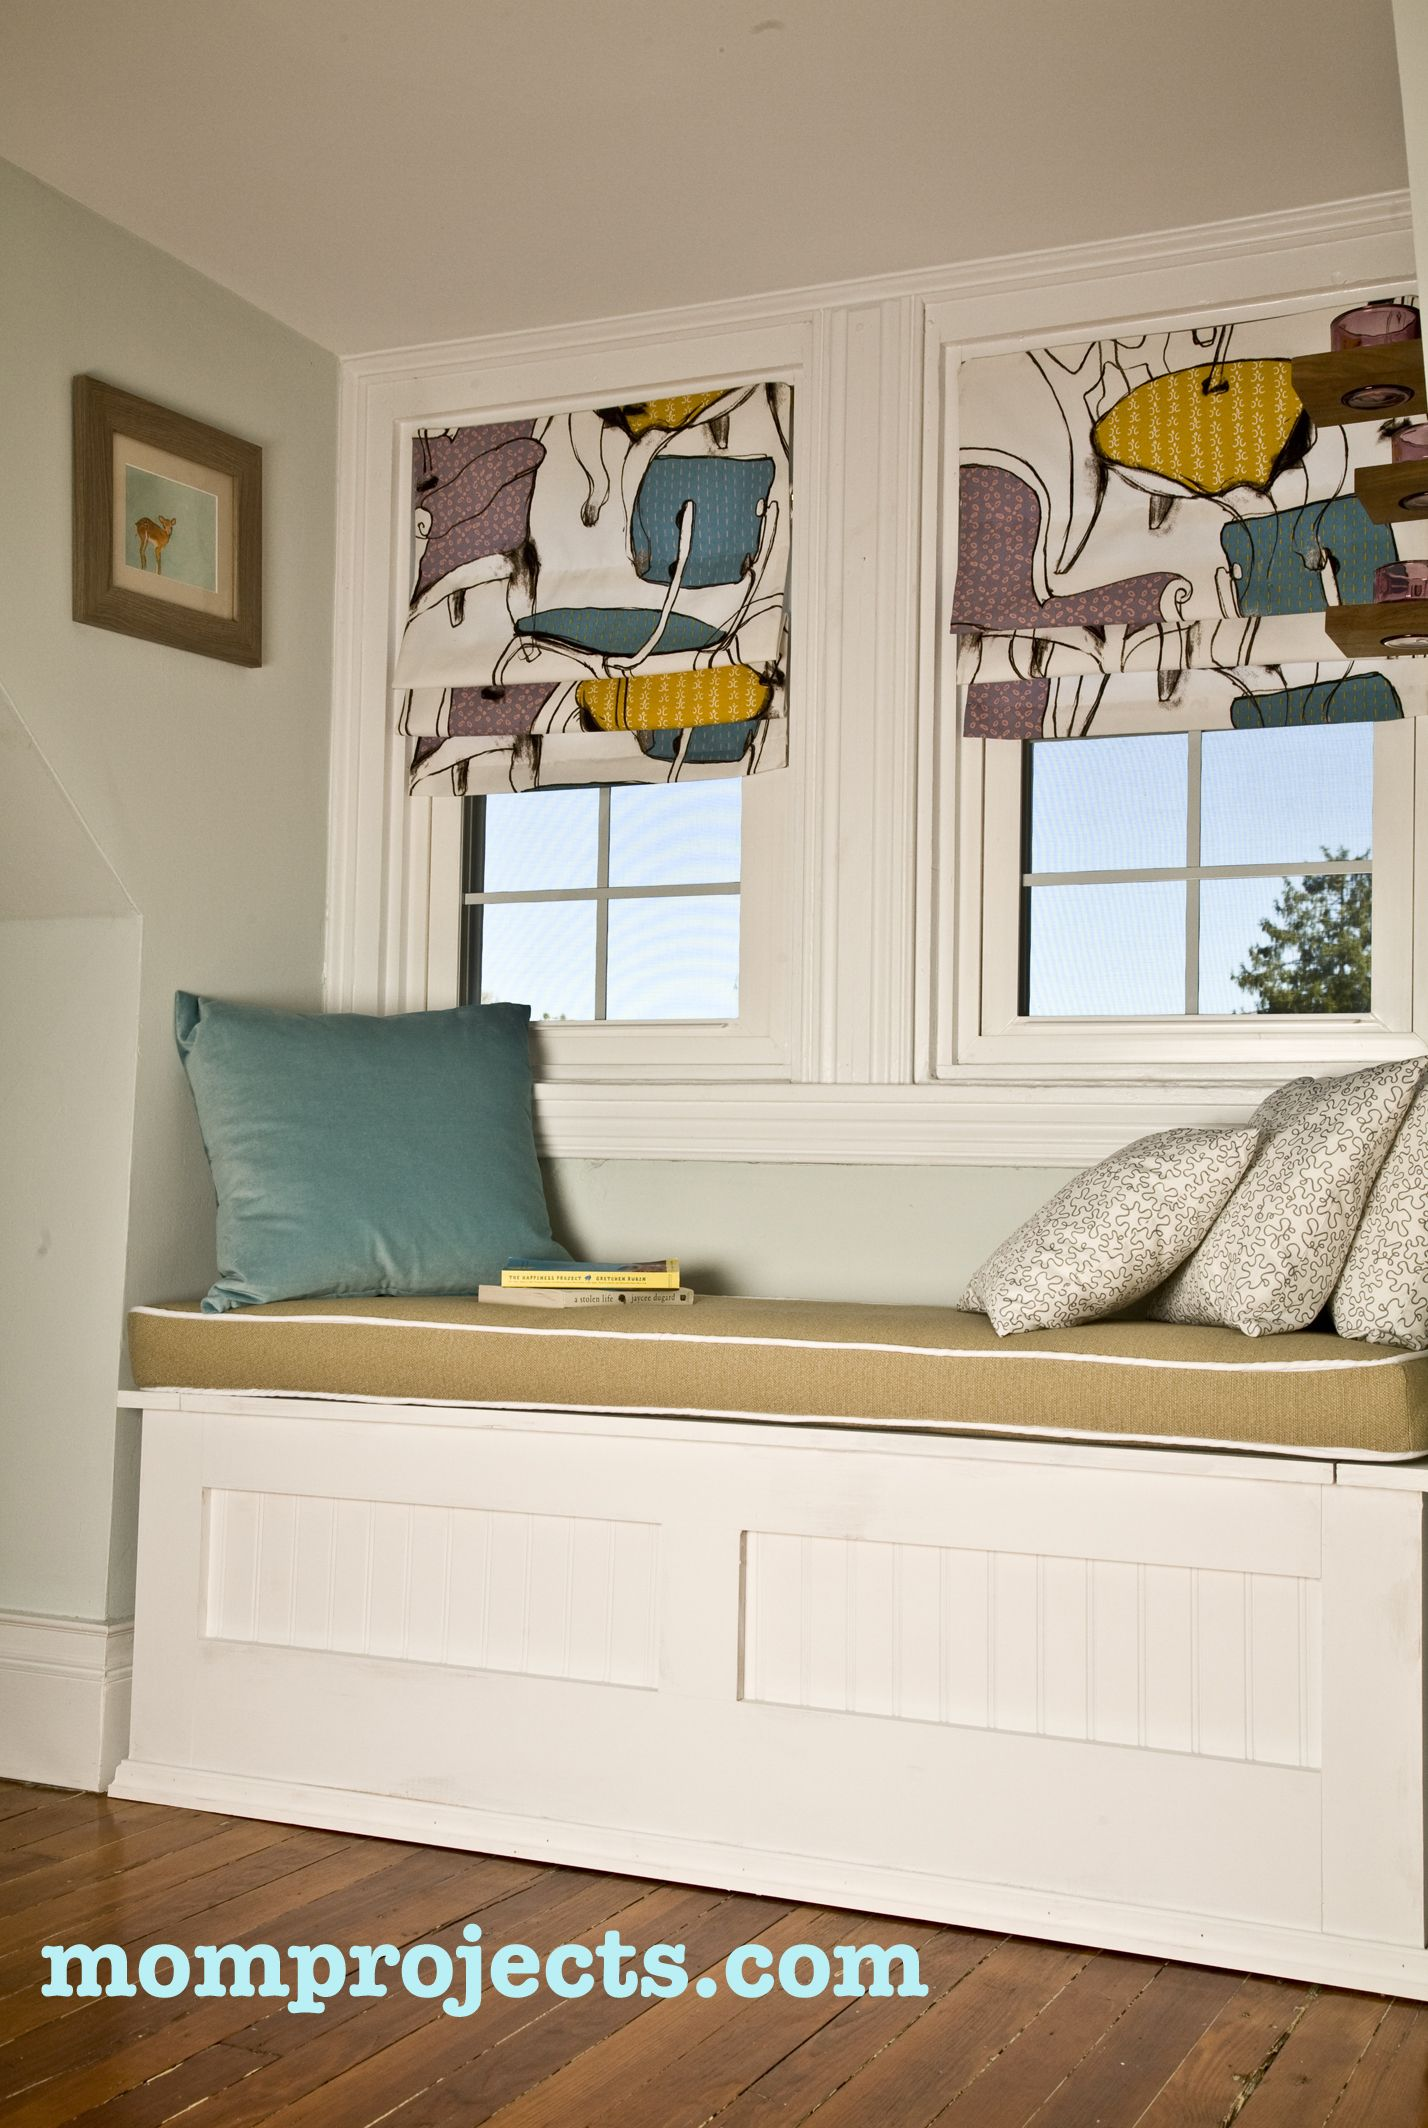 How to Make a Window Seat Cushion With Piping Seat